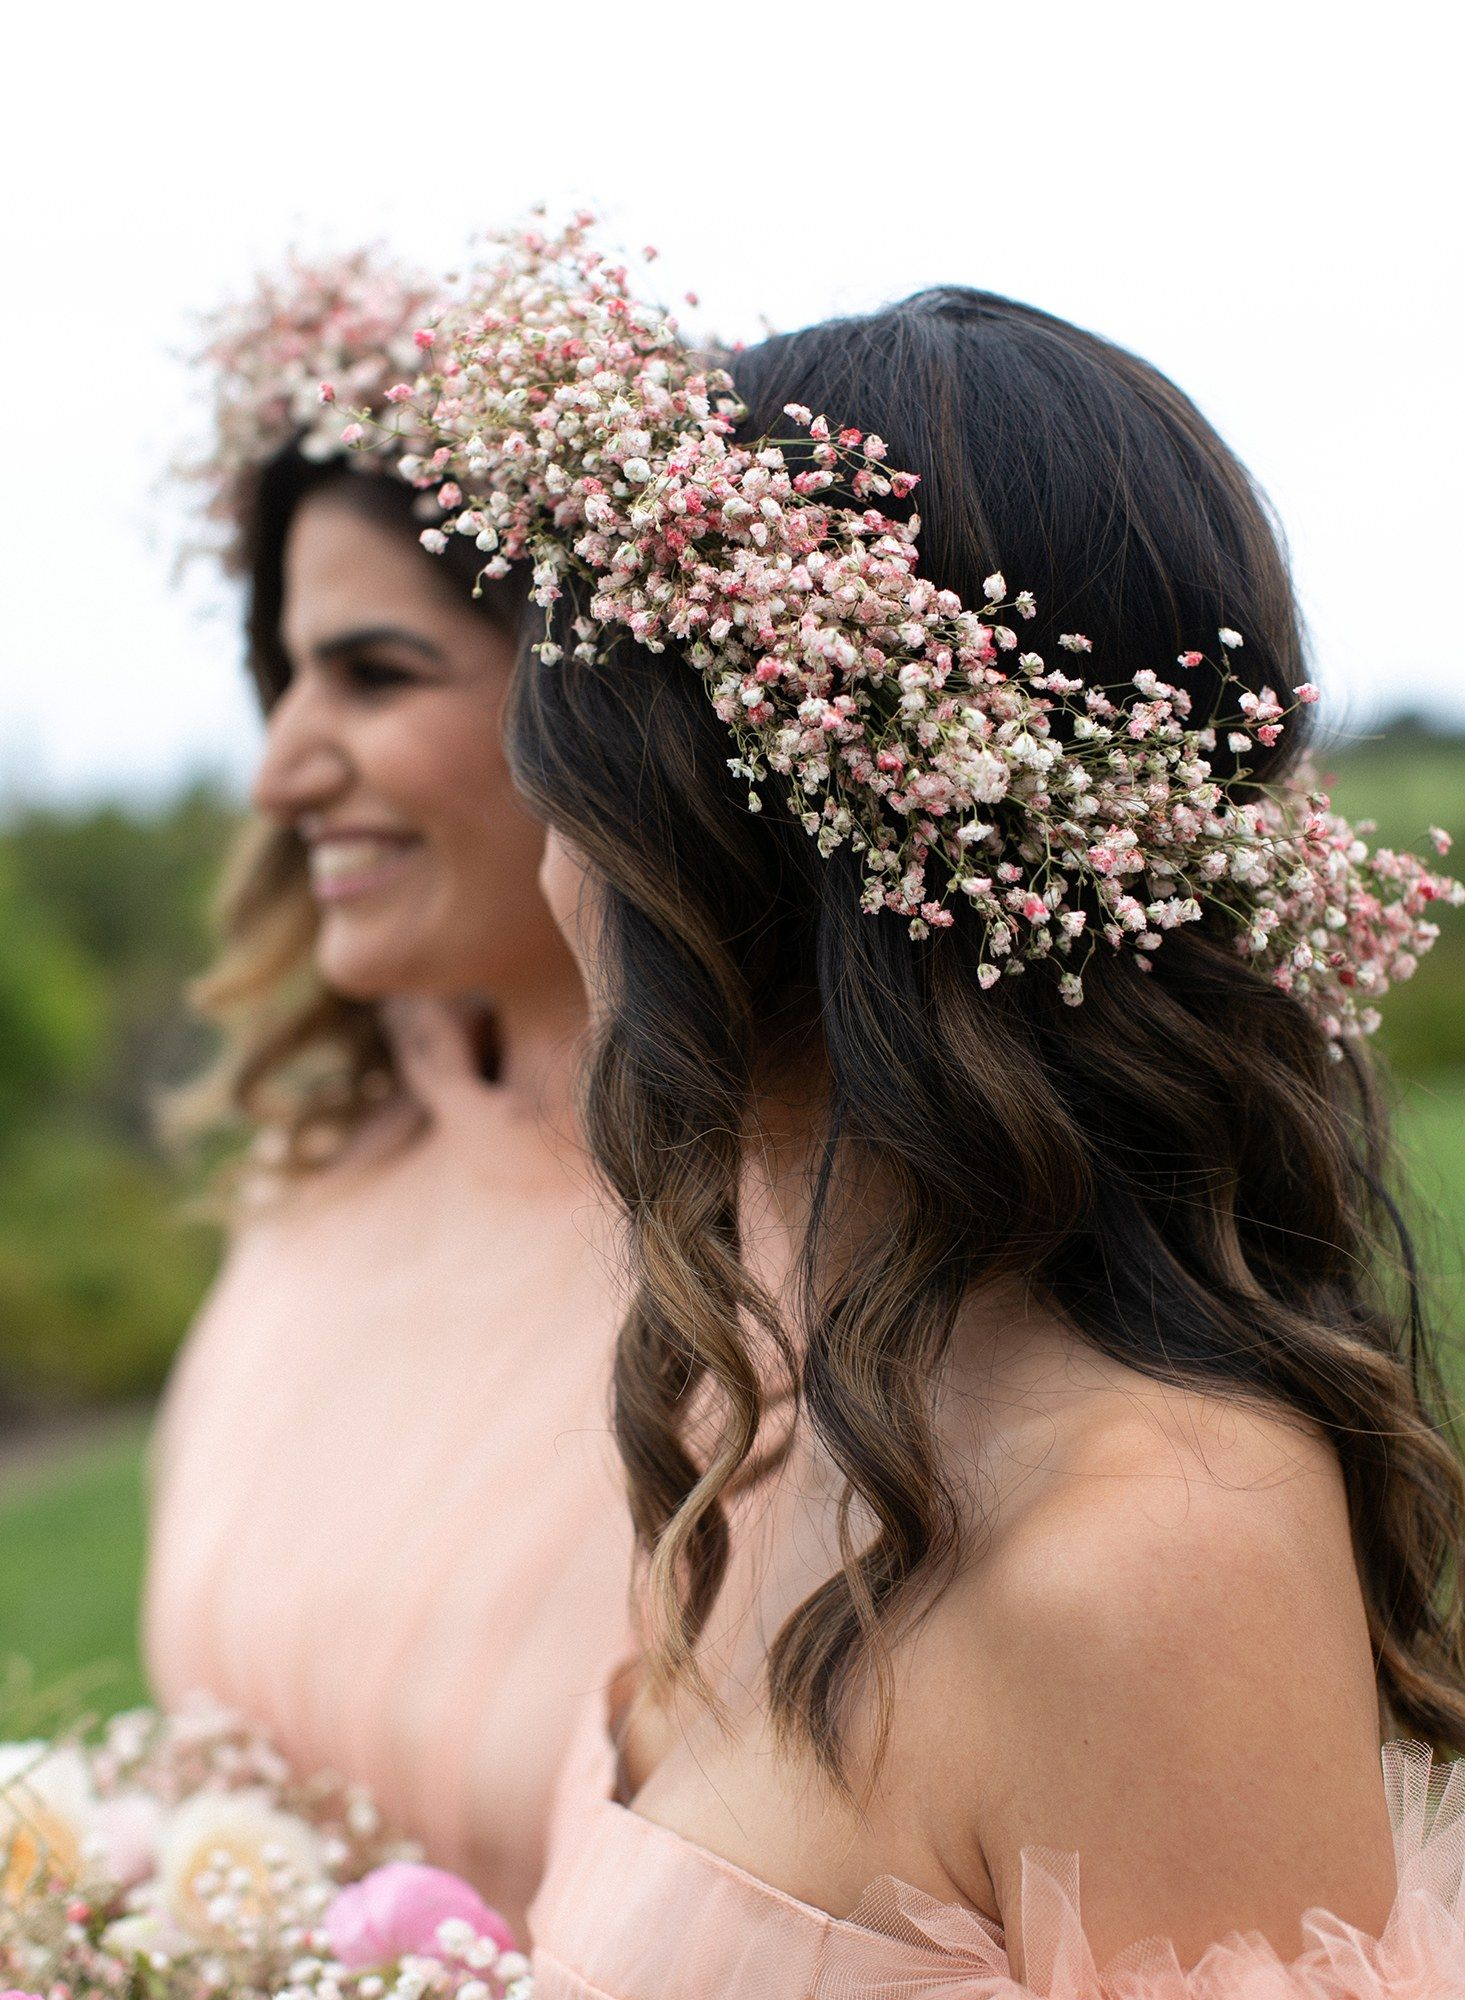 This Bride Wore Chanel Haute Couture To Her Garden Wedding In California Floral Crown Wedding Flower Crown Hairstyle Flower Crown Bride